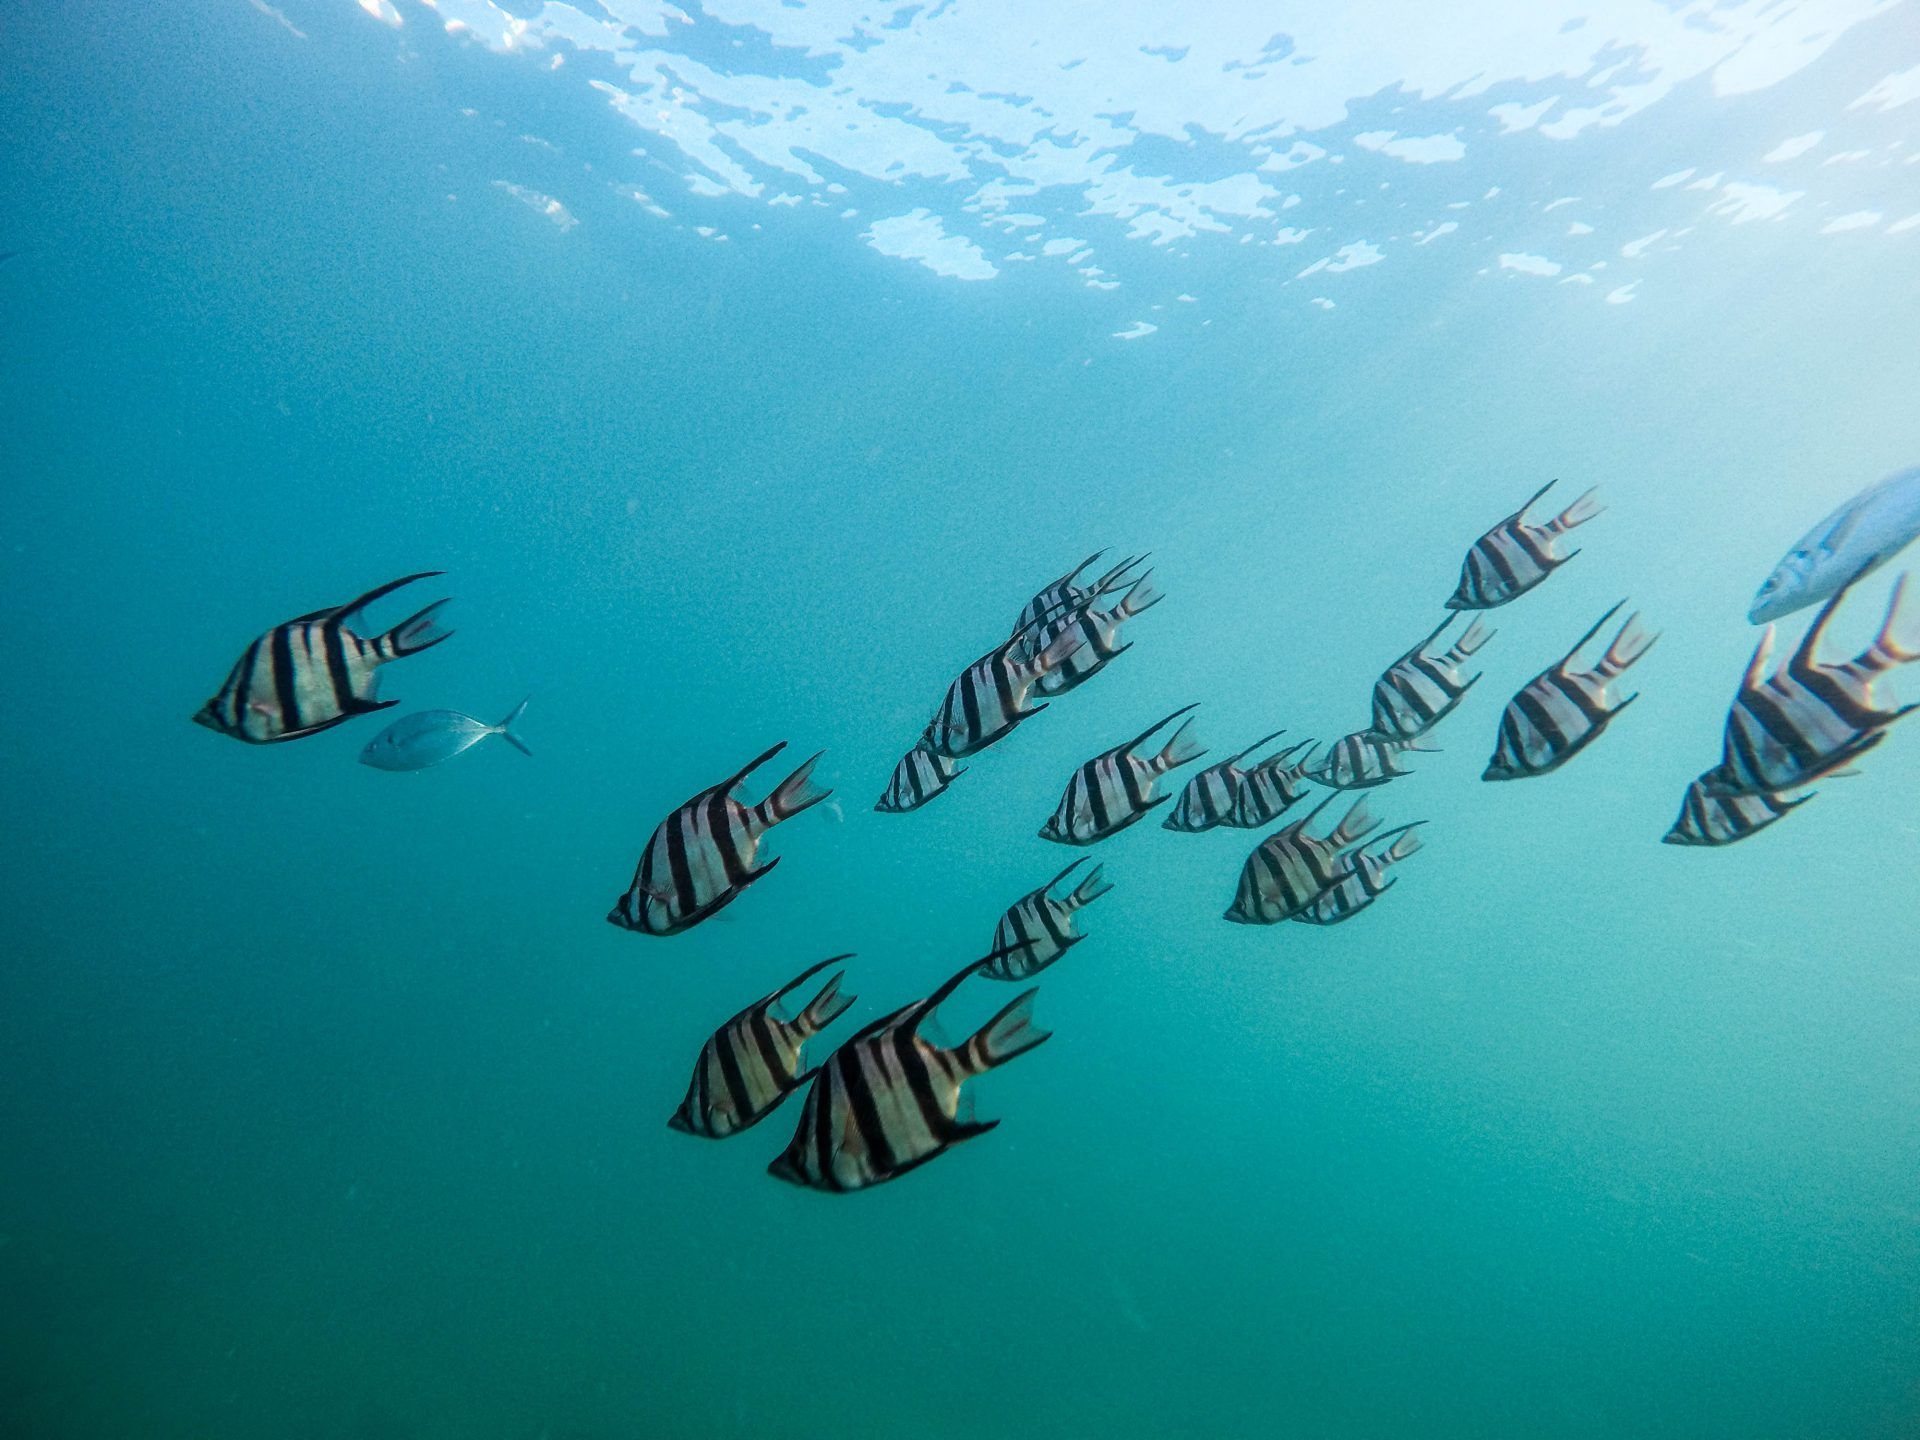 fish swimming in the ocean